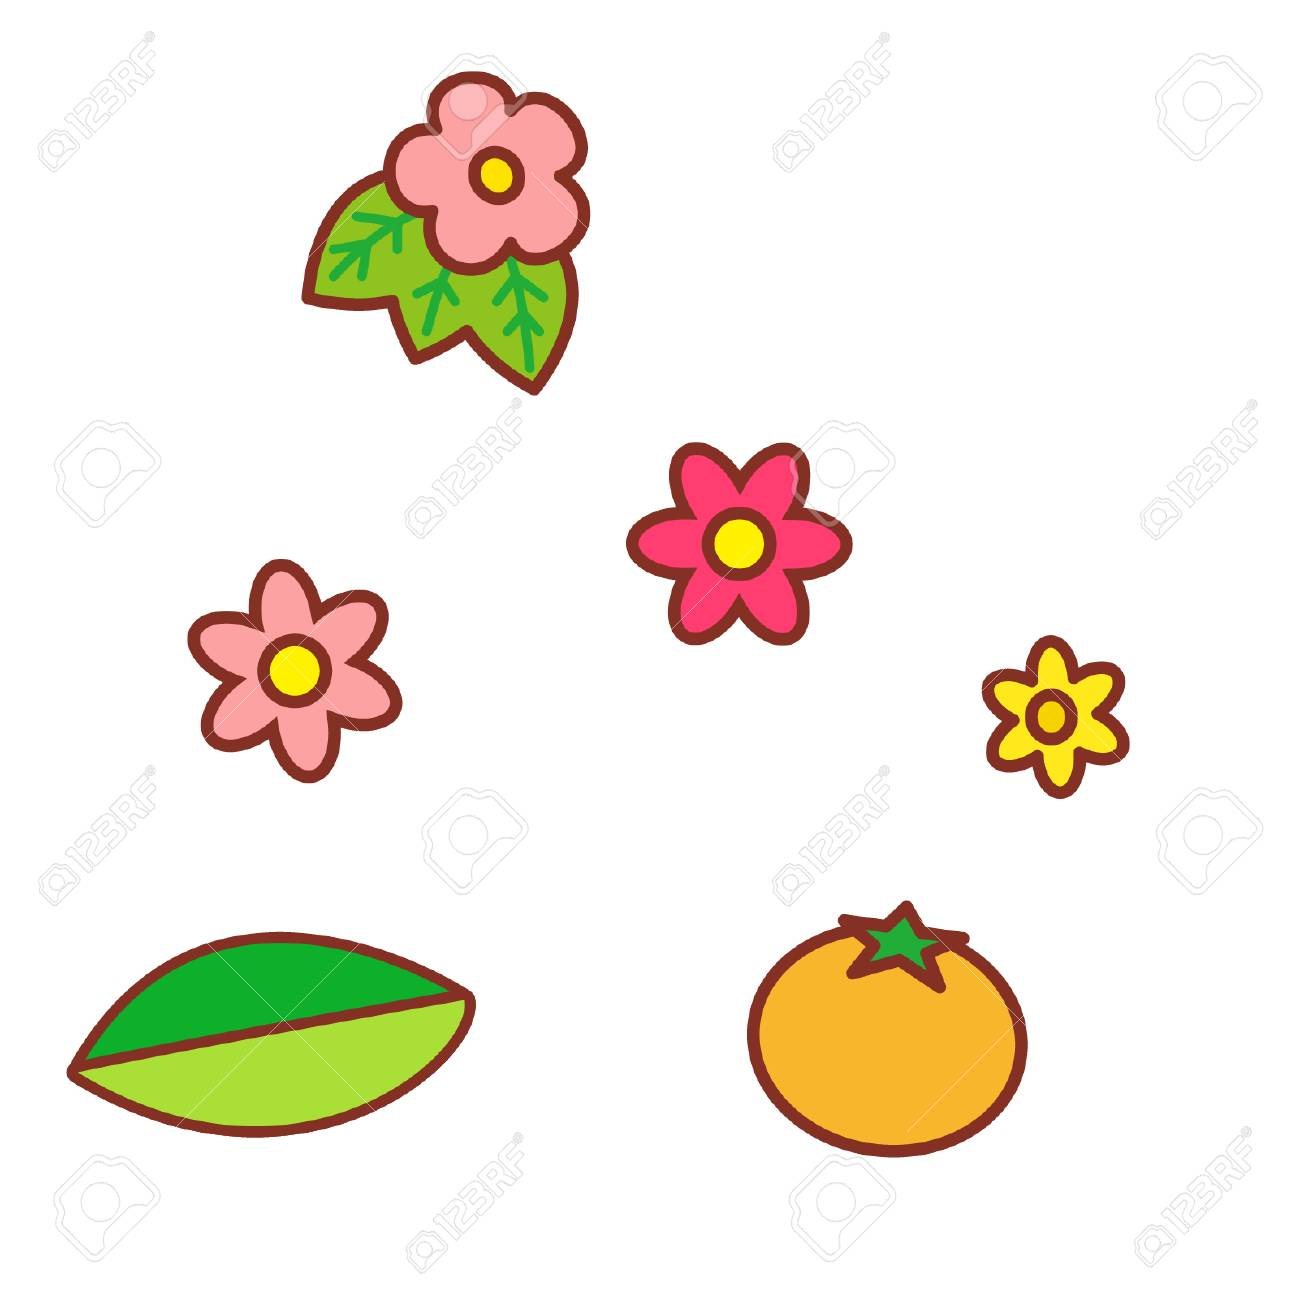 Cartoon Flowers And Fruit Royalty Free Cliparts Vectors And Stock